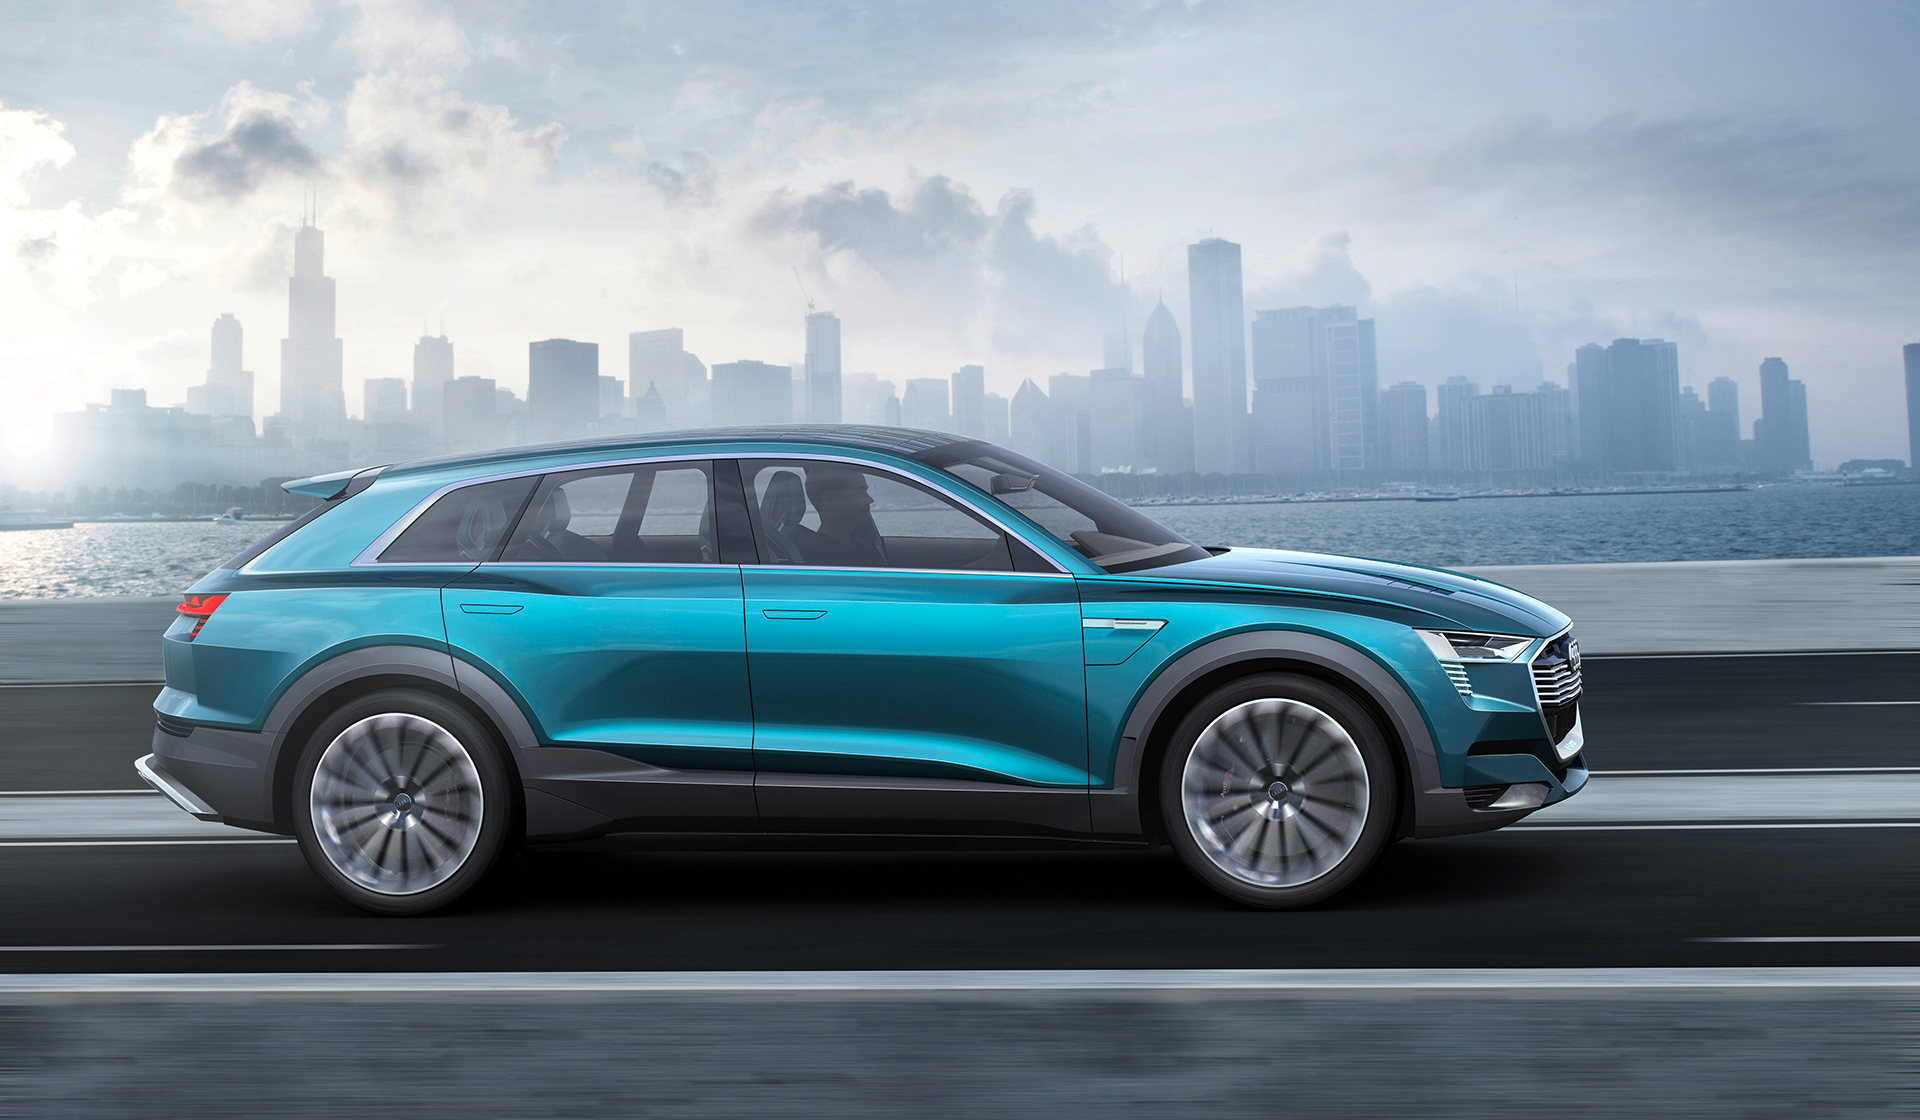 Audi e-tron quattro concept - 2016 - side-face / profil - on road / sur route